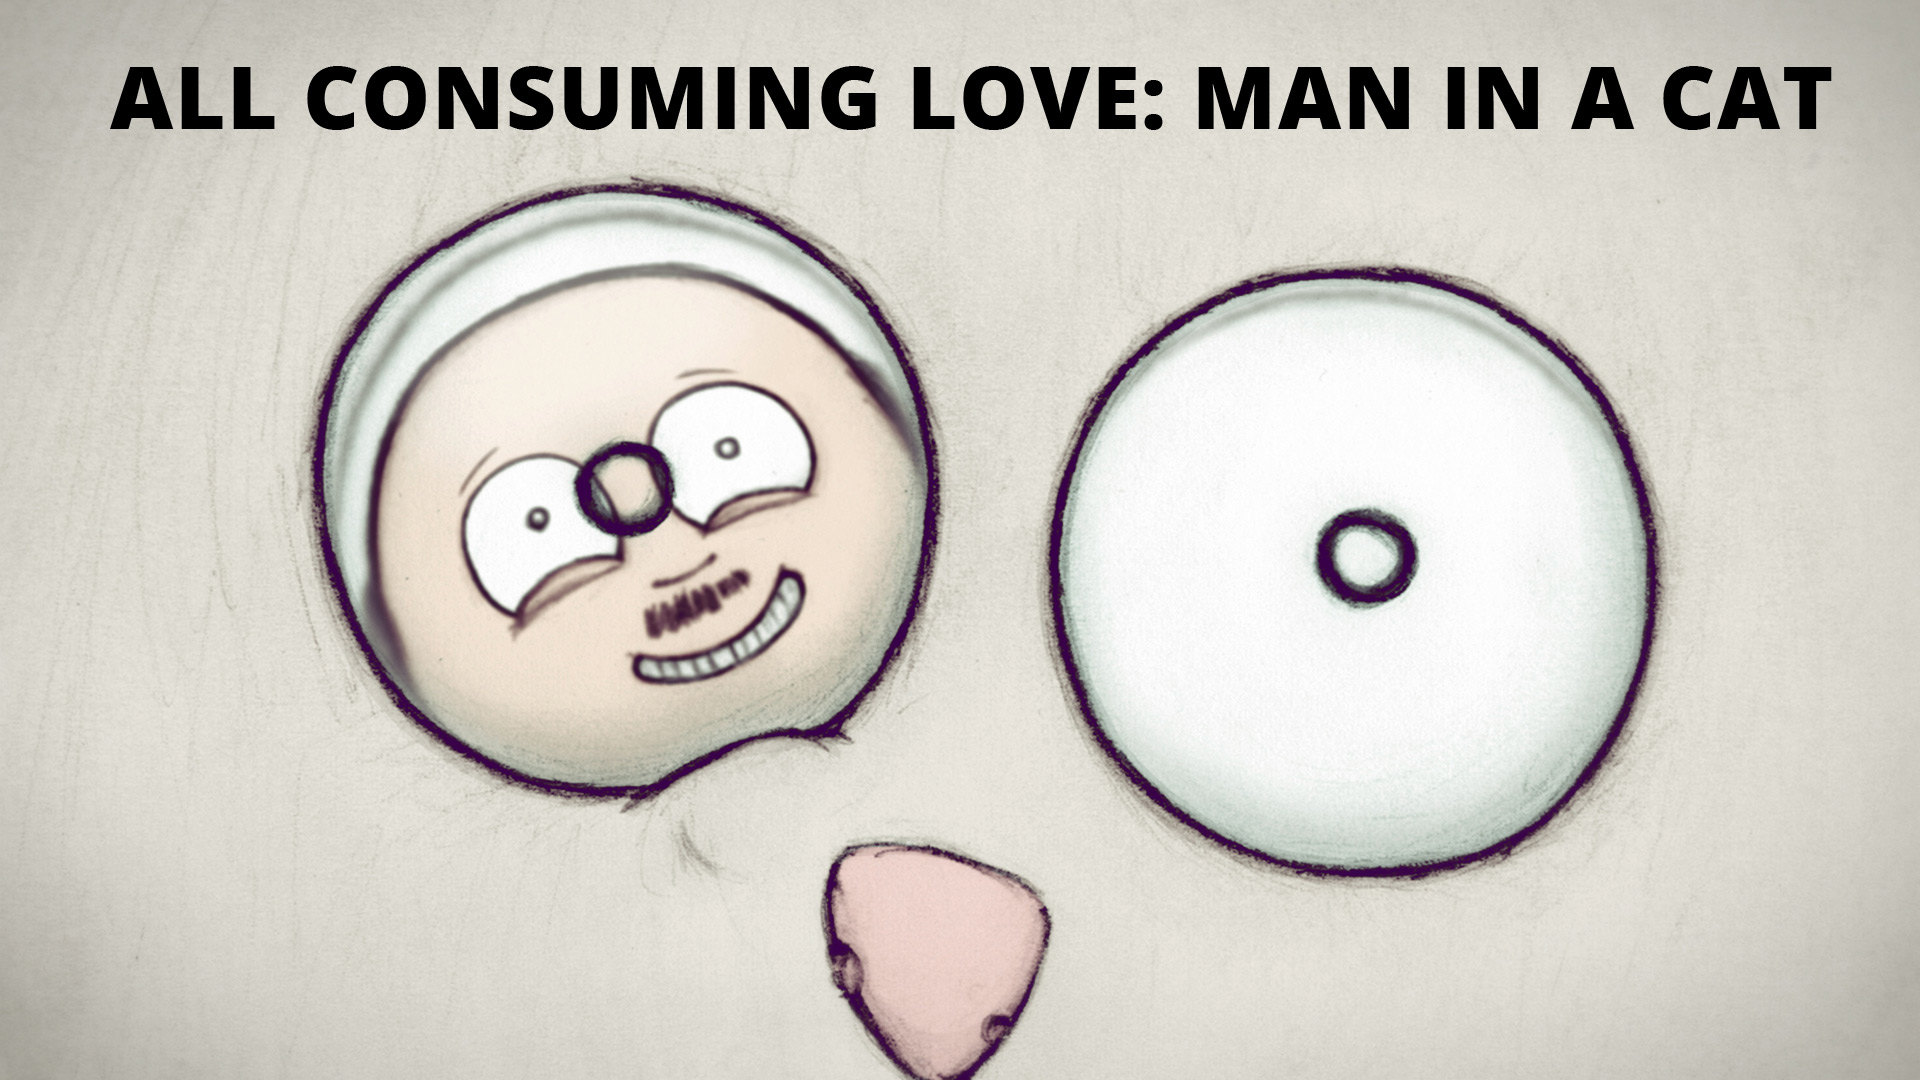 All Consuming Love: Man in a Cat